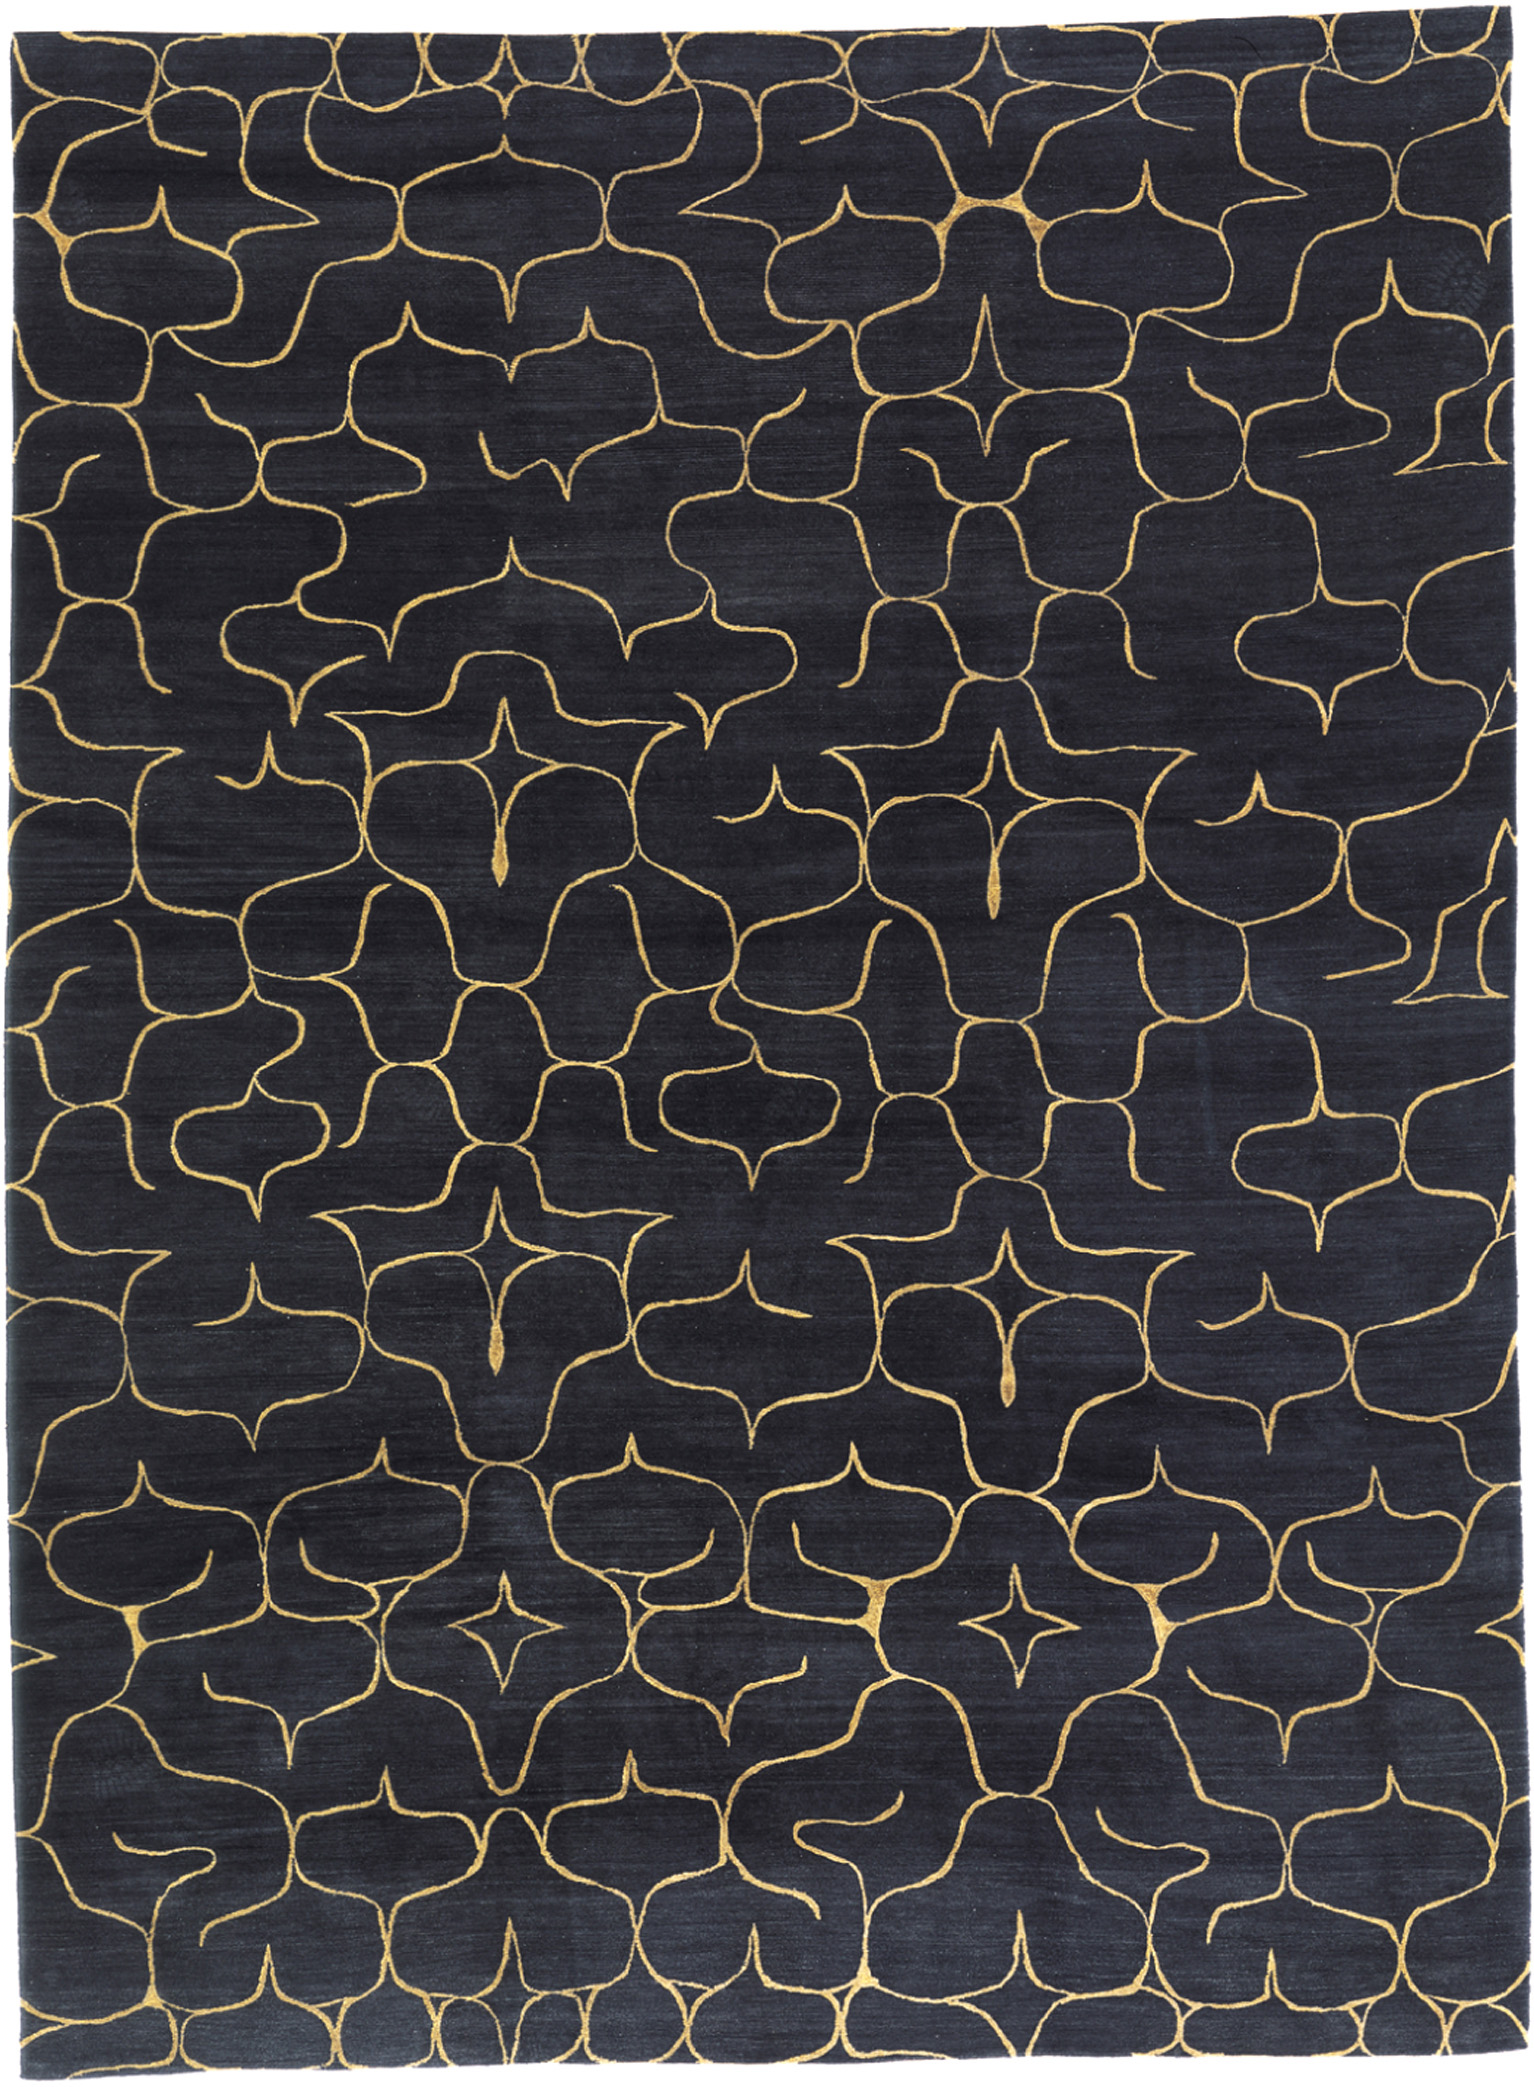 'Ainu' shown in colour 'Ink' by Odegard Carpets. | Image courtesy of Odegard Carpets.